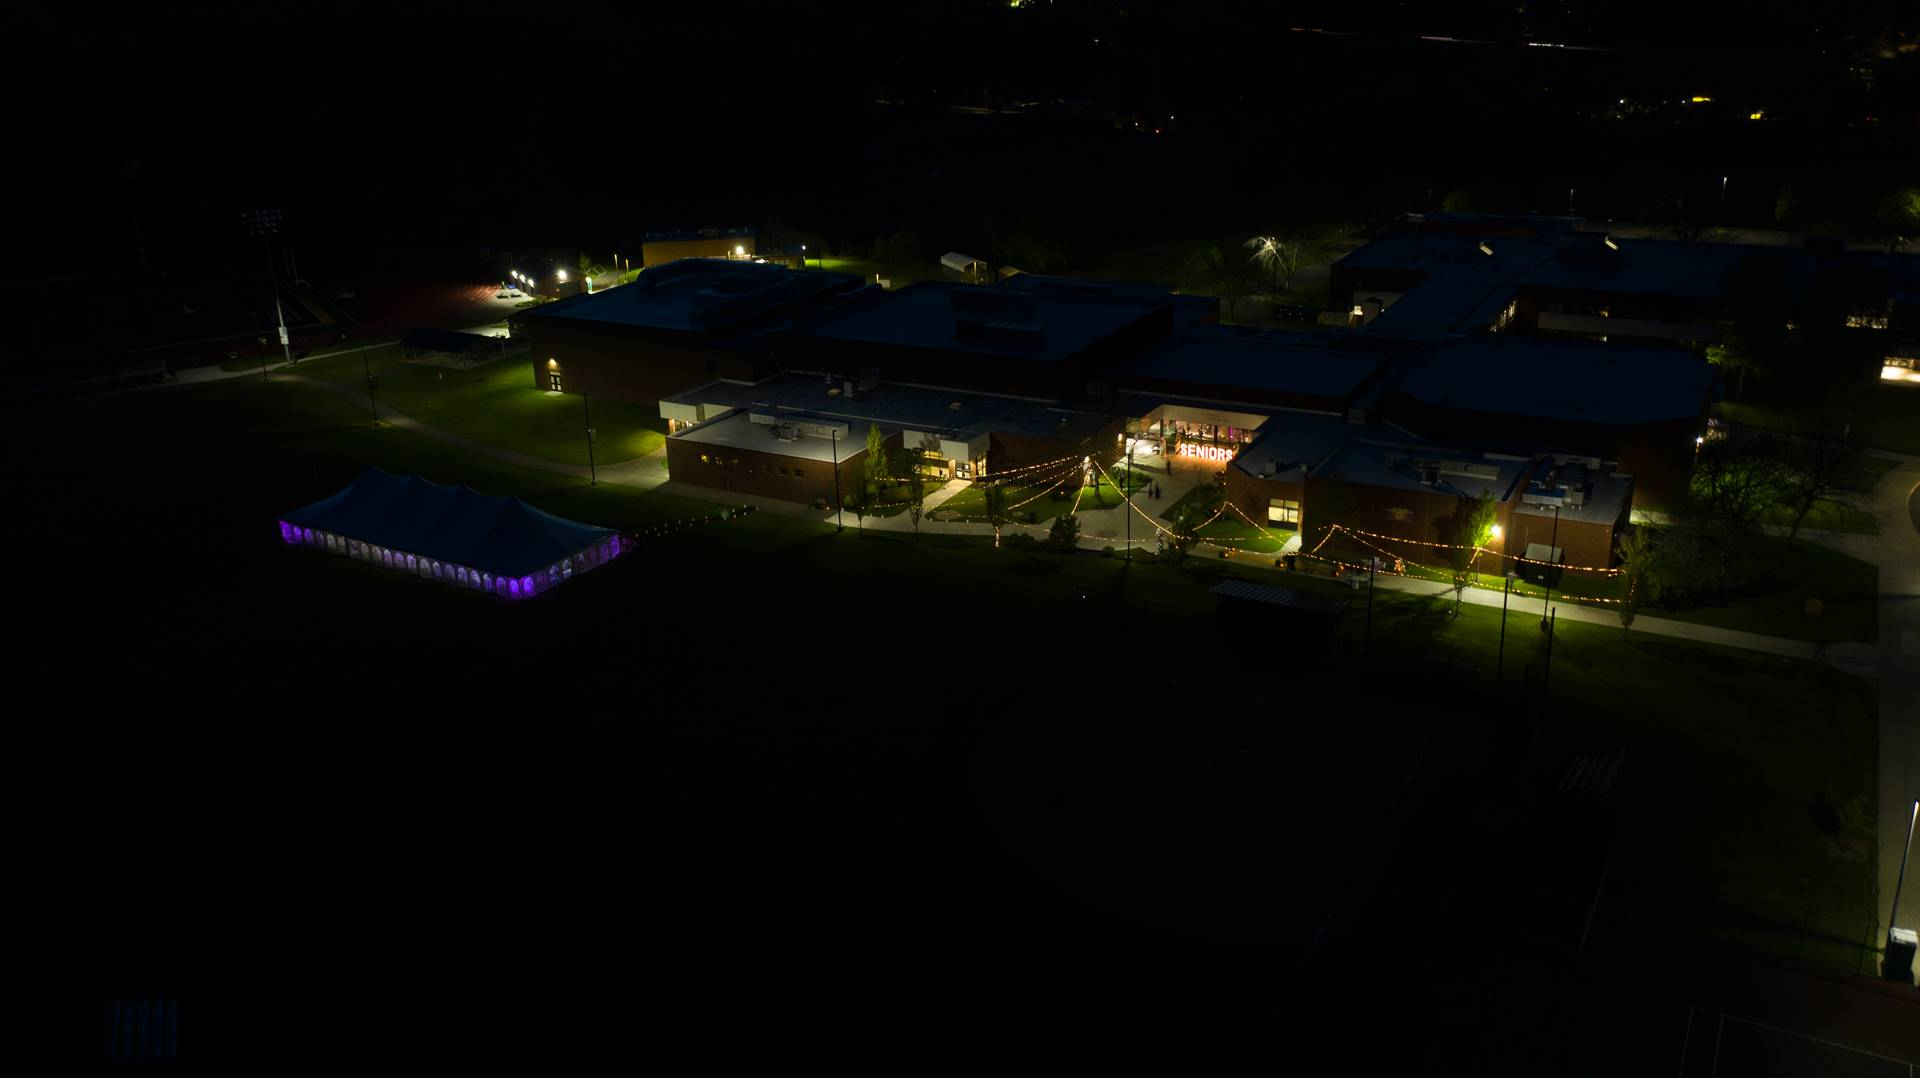 Arial view of WCHS campus at night